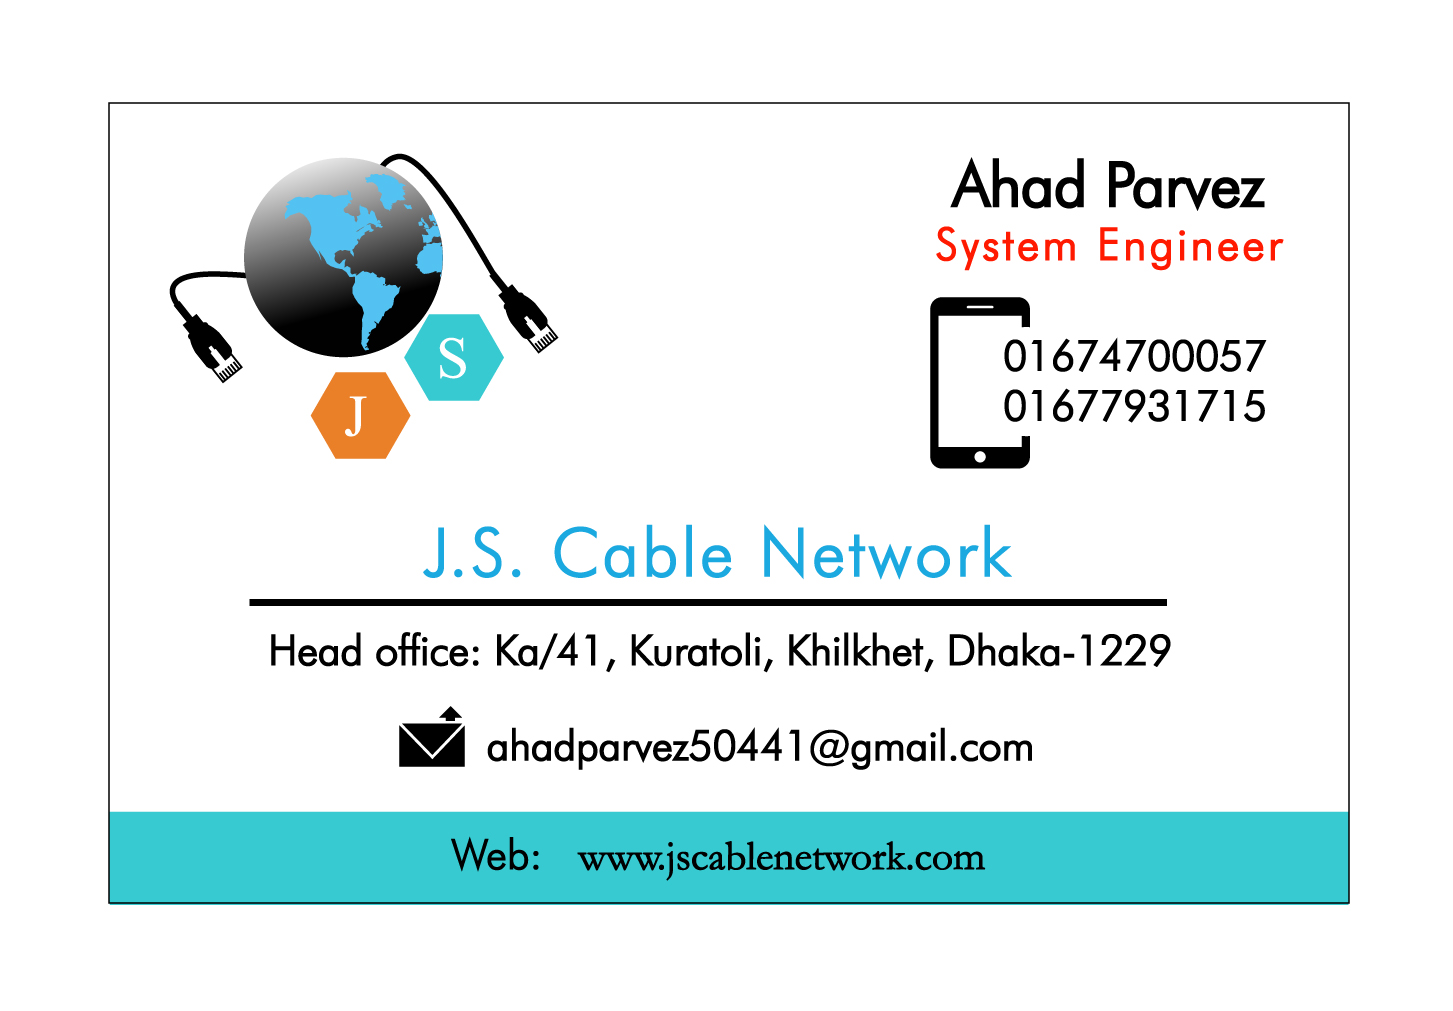 J.S. Cable Network Business card | Curvepixel